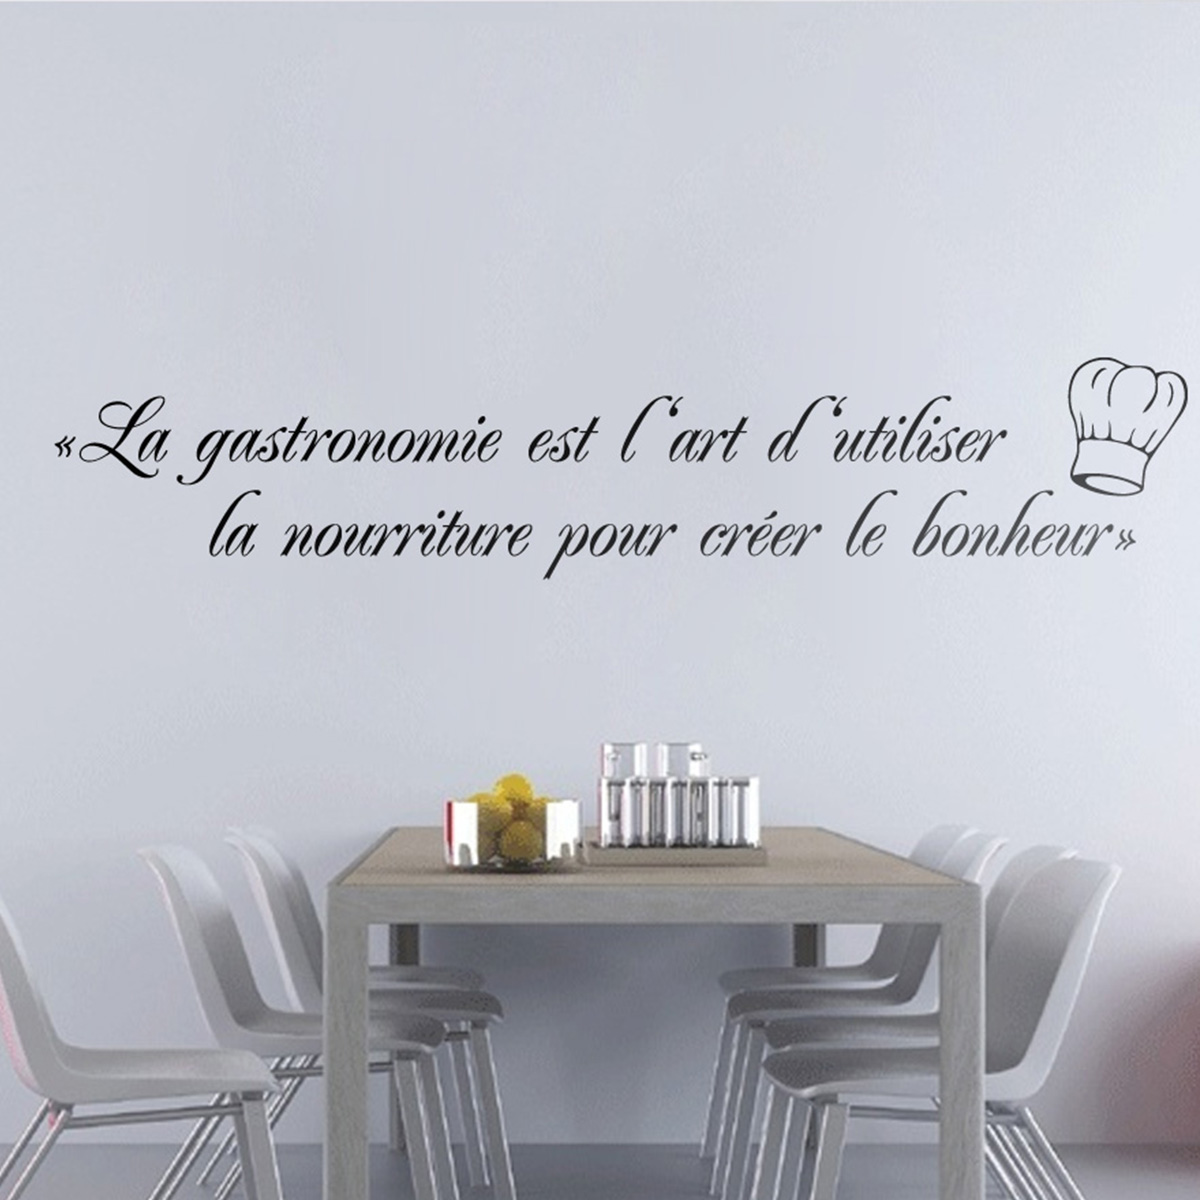 sticker la gastronomie est un art stickers muraux pour la cuisine ambiance. Black Bedroom Furniture Sets. Home Design Ideas